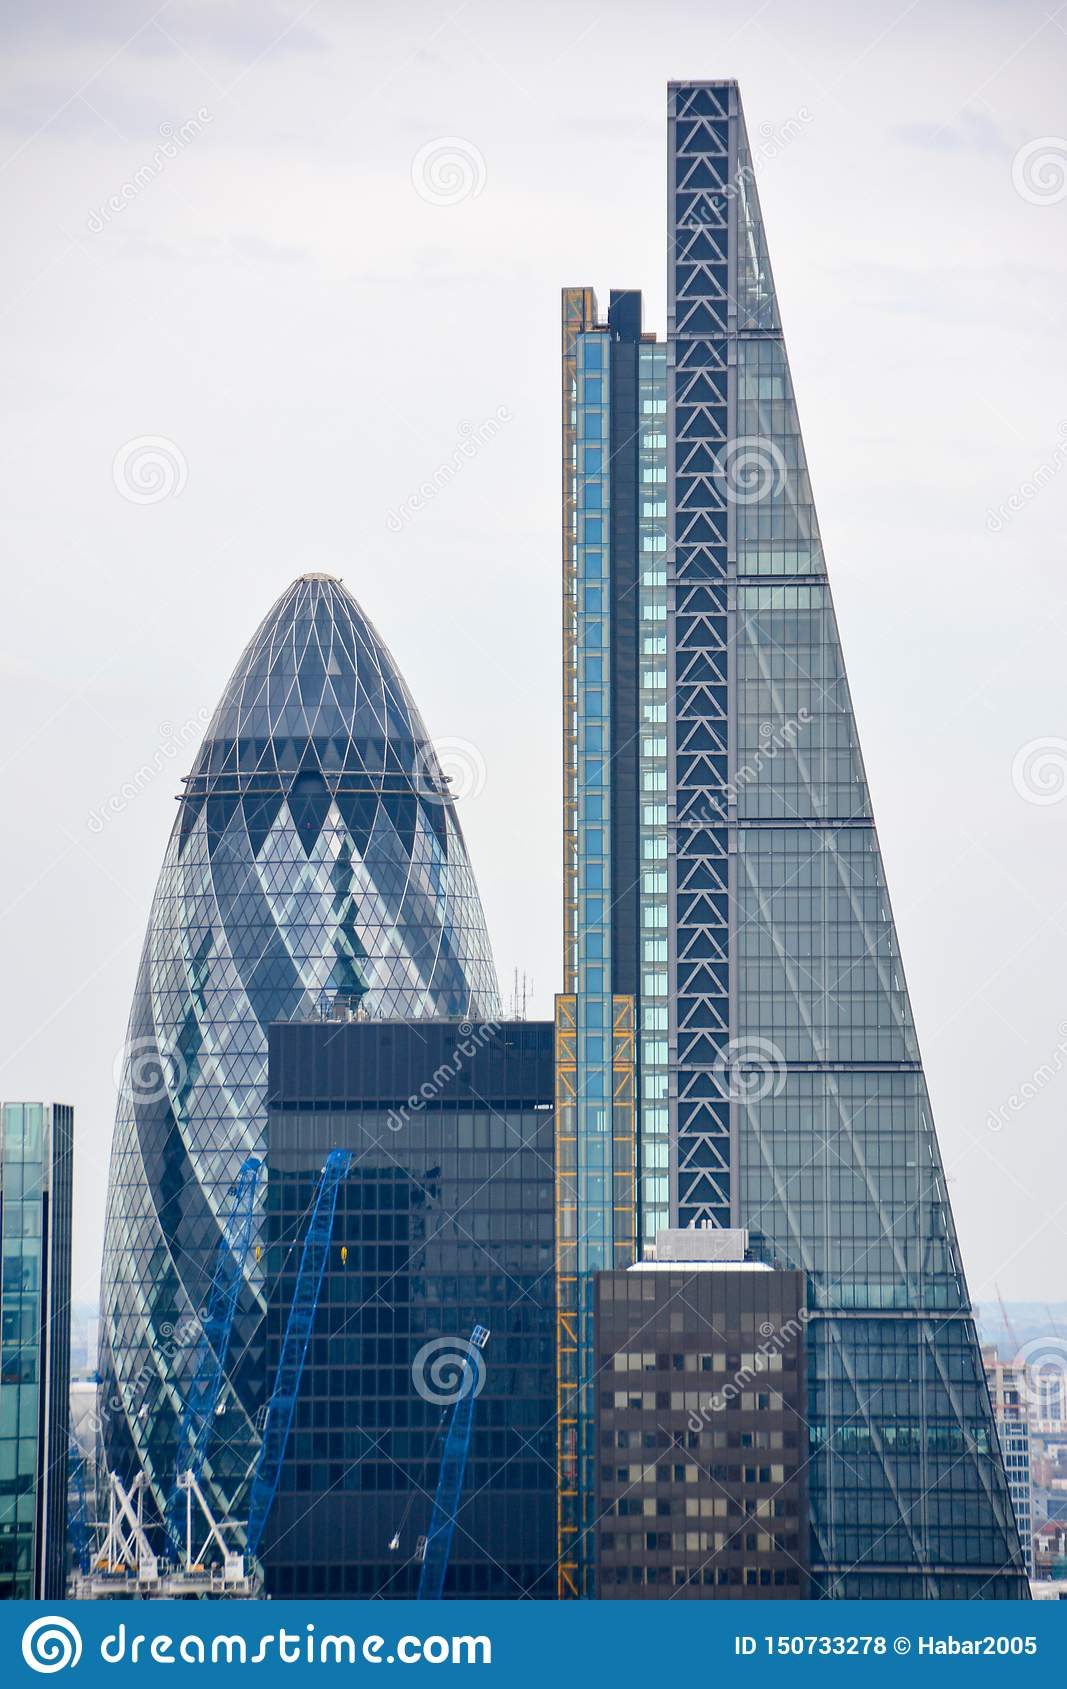 LONDON, UK - JULY 19, 2014: City of London one of the leading centers of global finance.